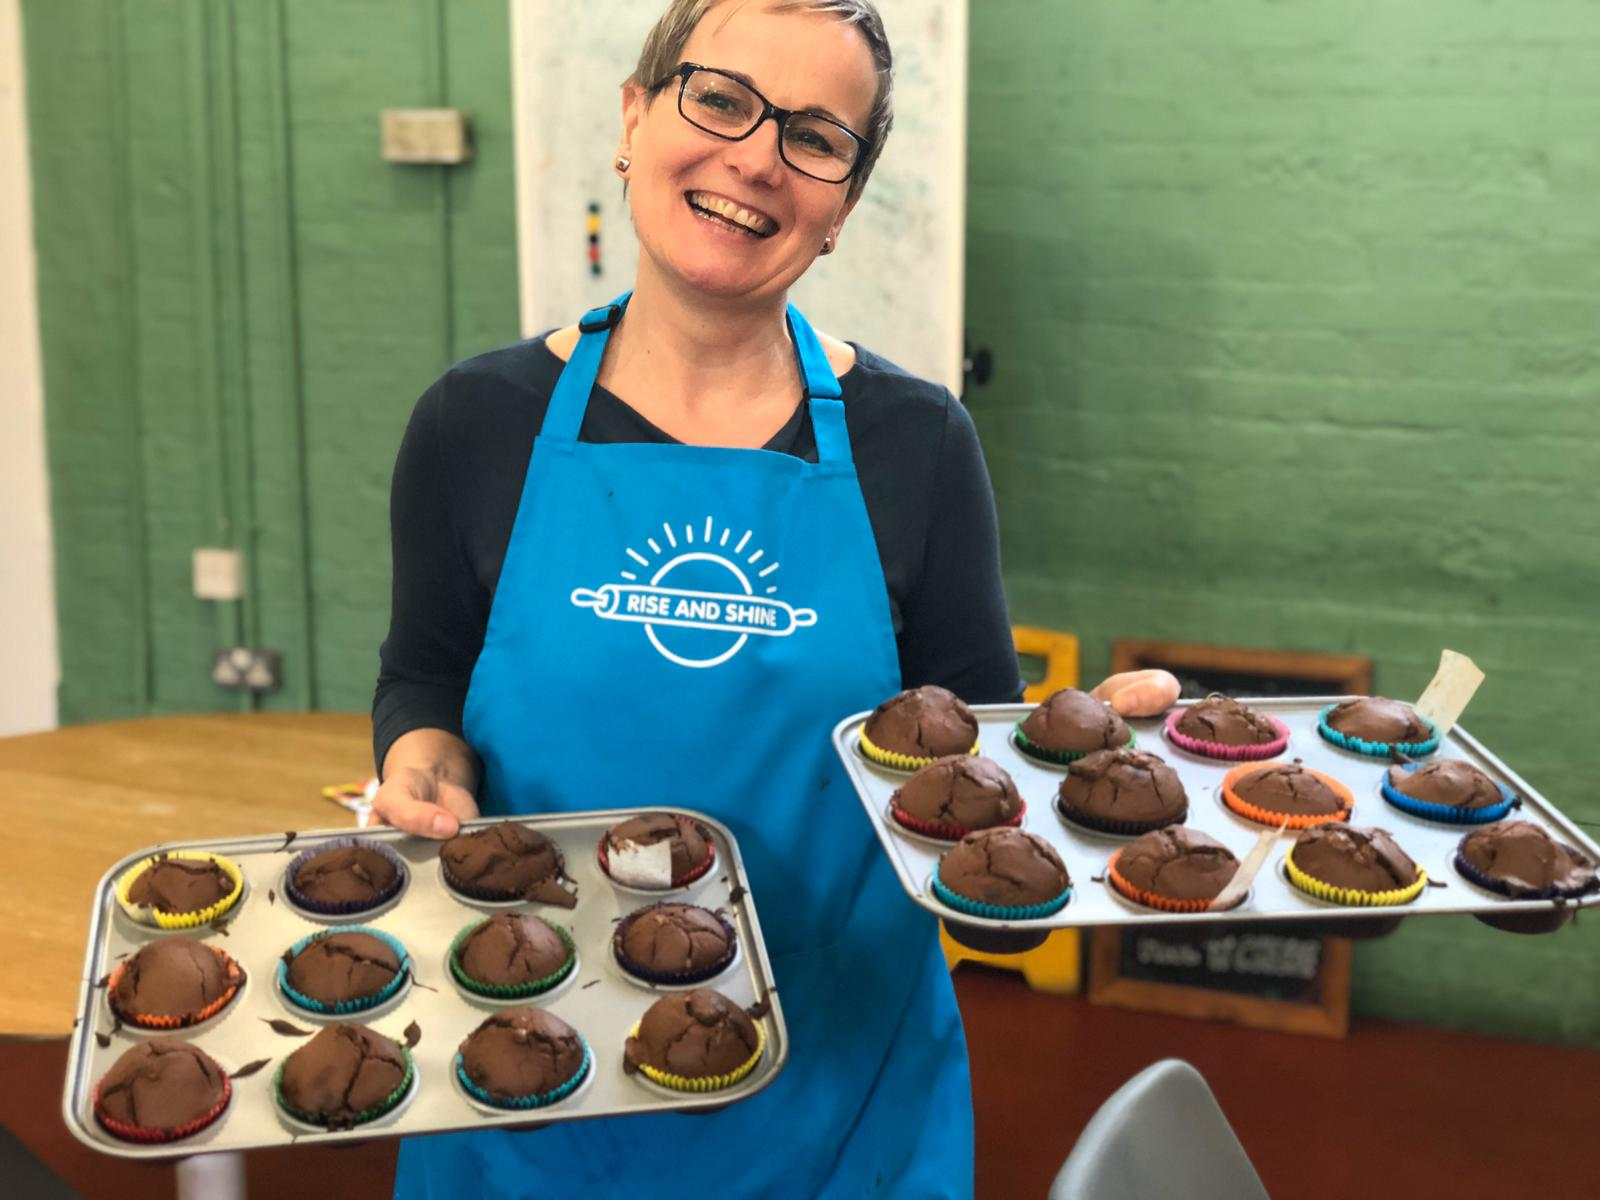 rise-and-shine-online-bake-shop-cricklewood-london-homemade-cookies